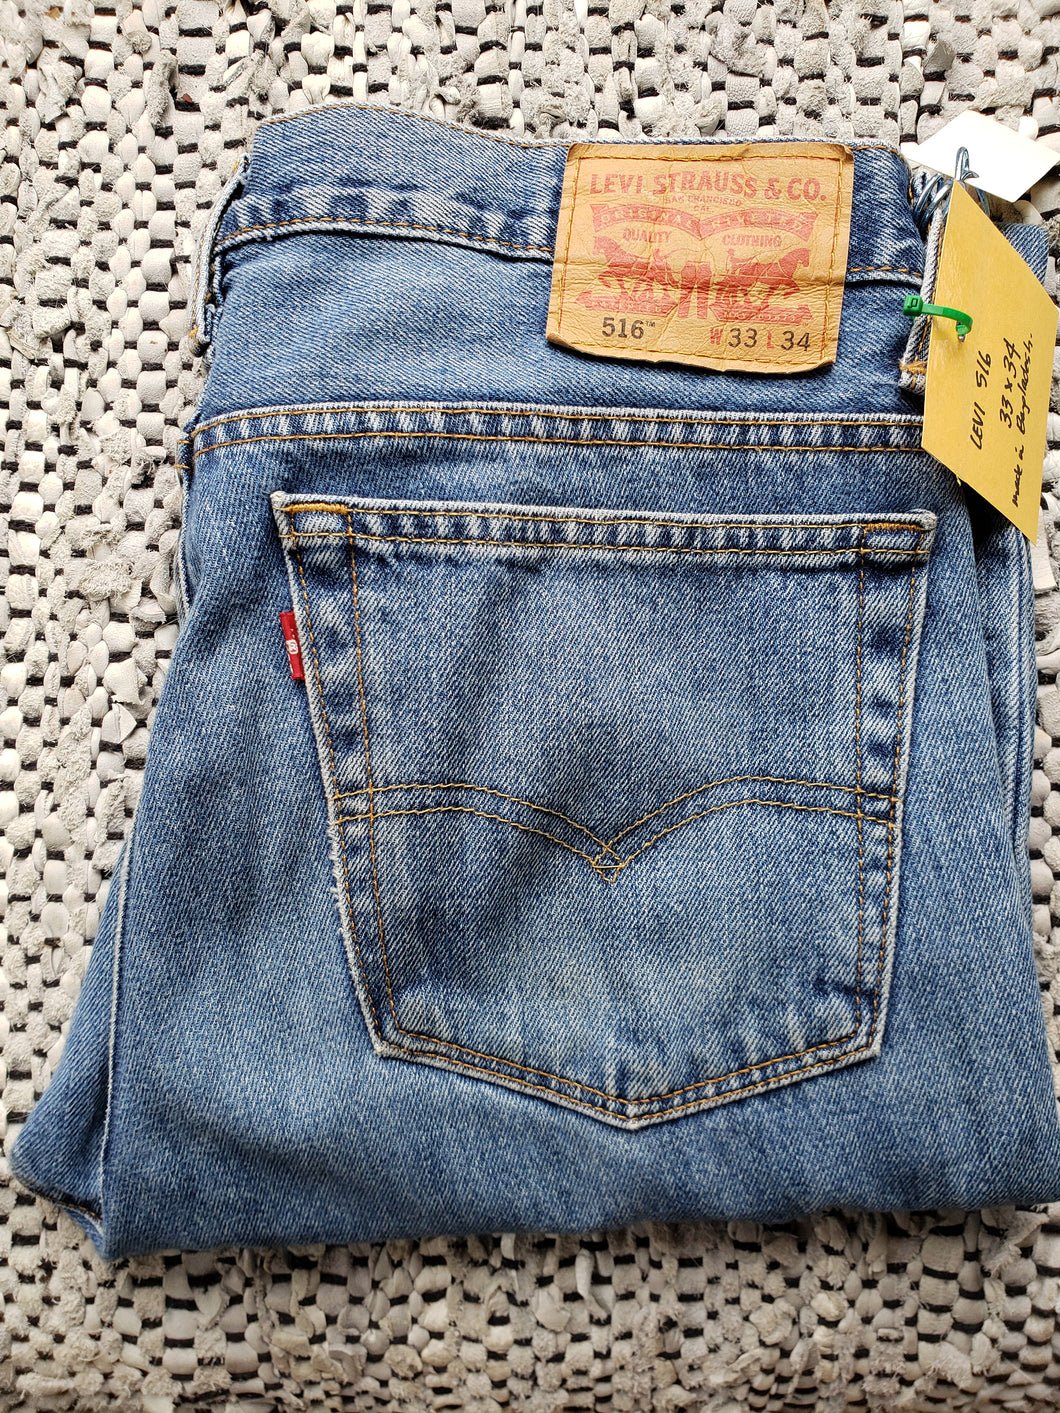 Levi's 516 red tab 33